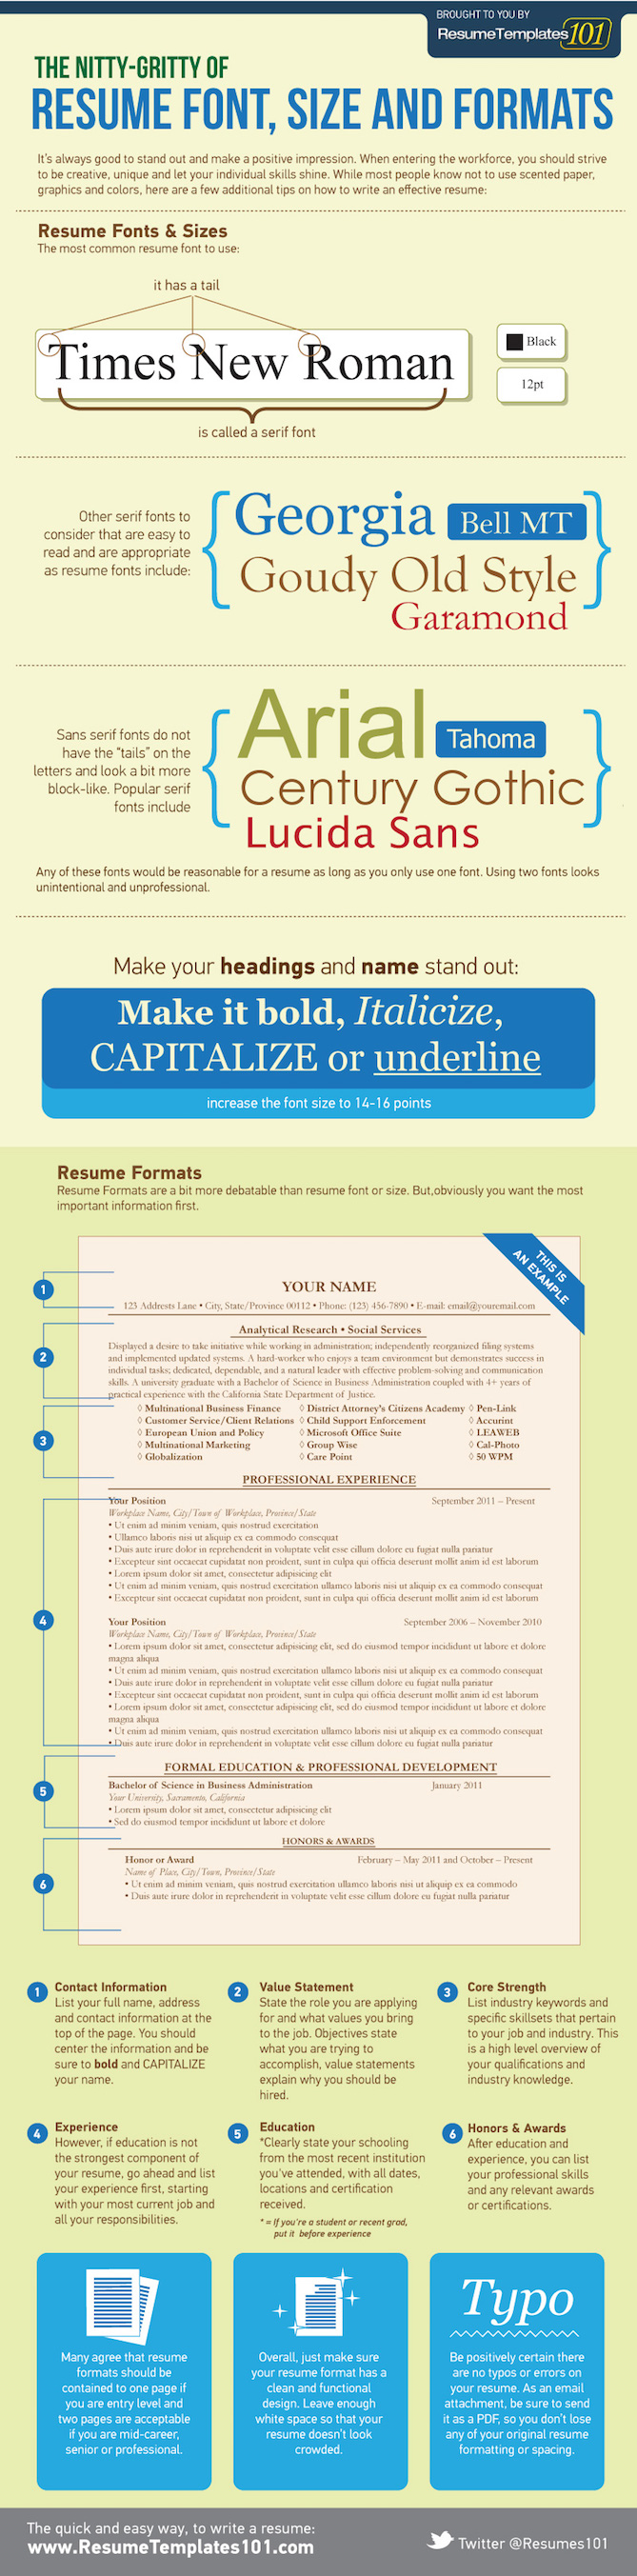 Infographic On How To Format A Resume Using The Best Font Type, Font Size,